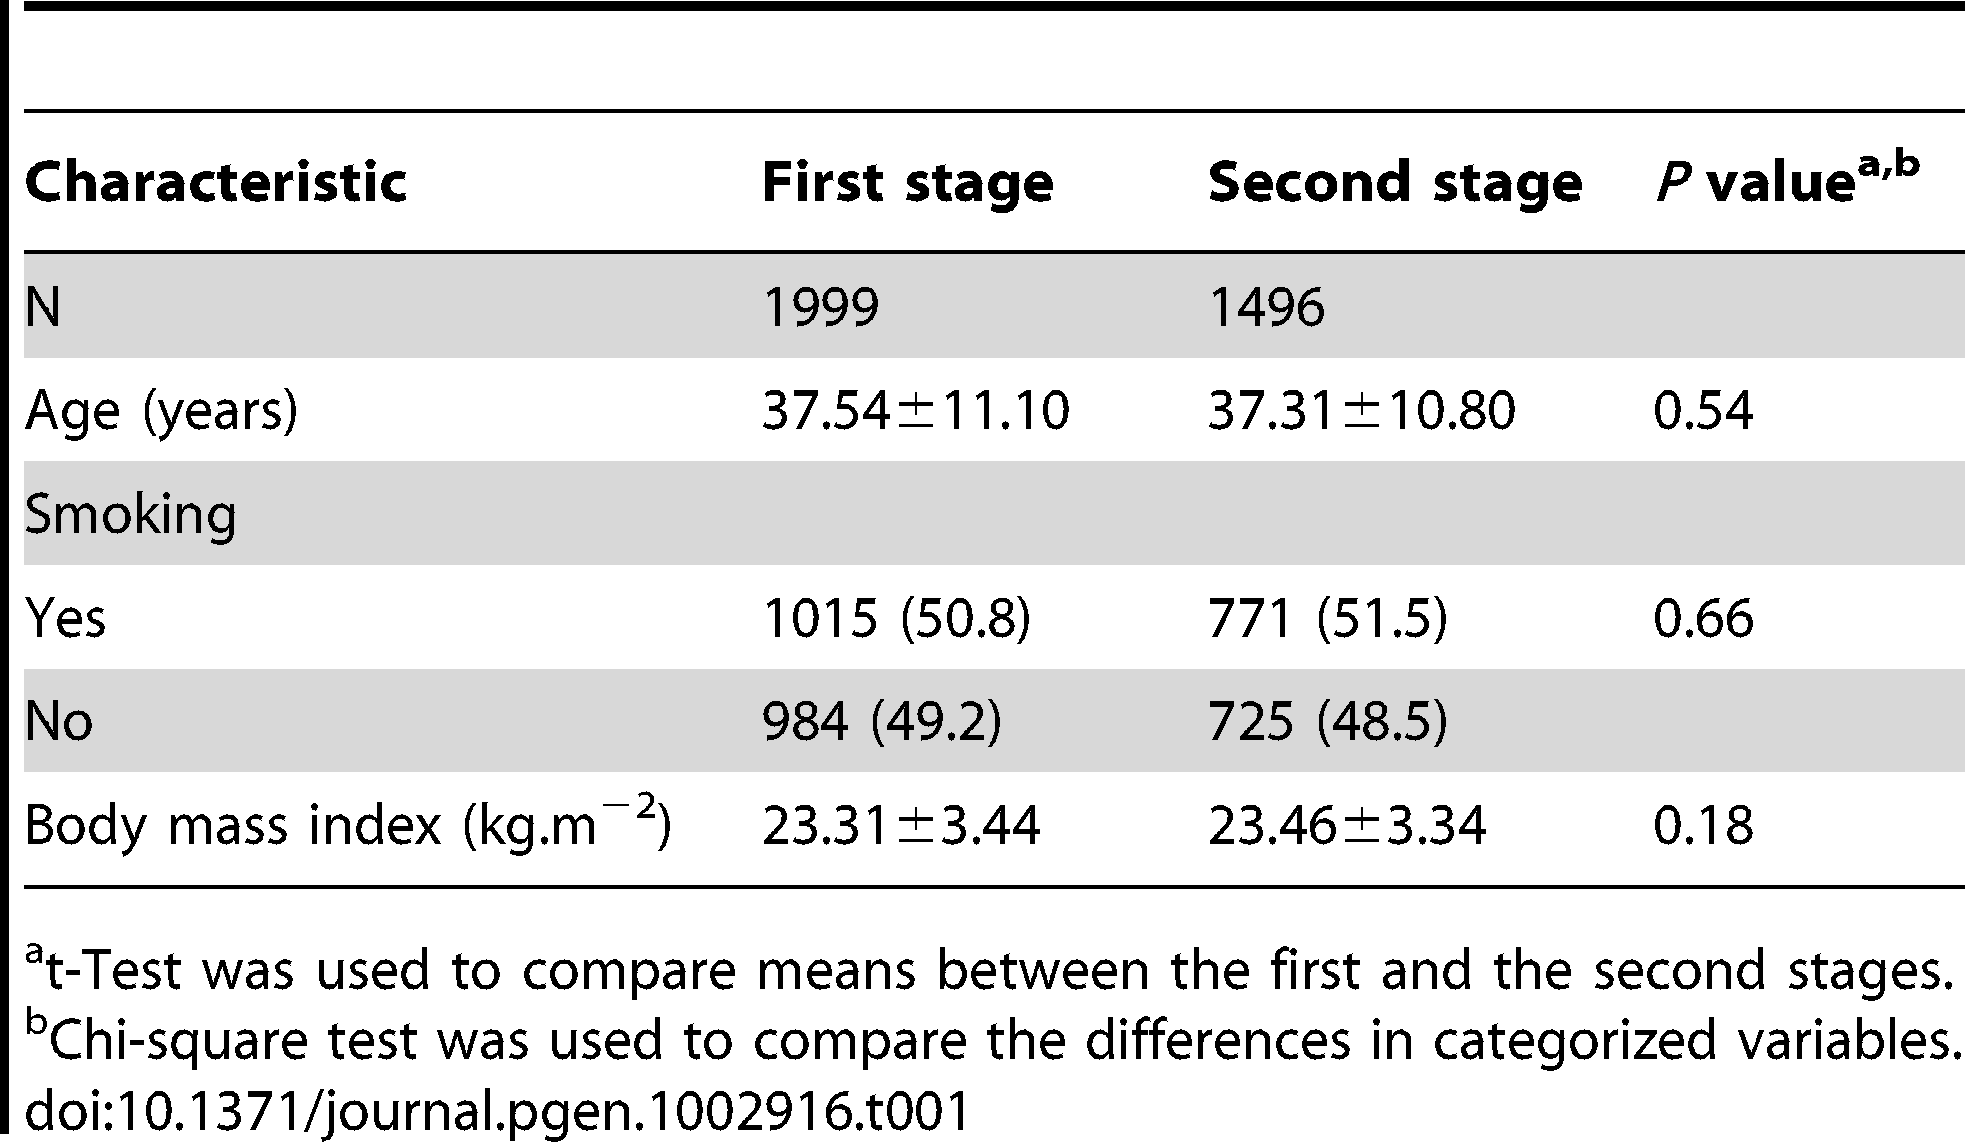 General characteristic of the two-stage GWAS study subjects.